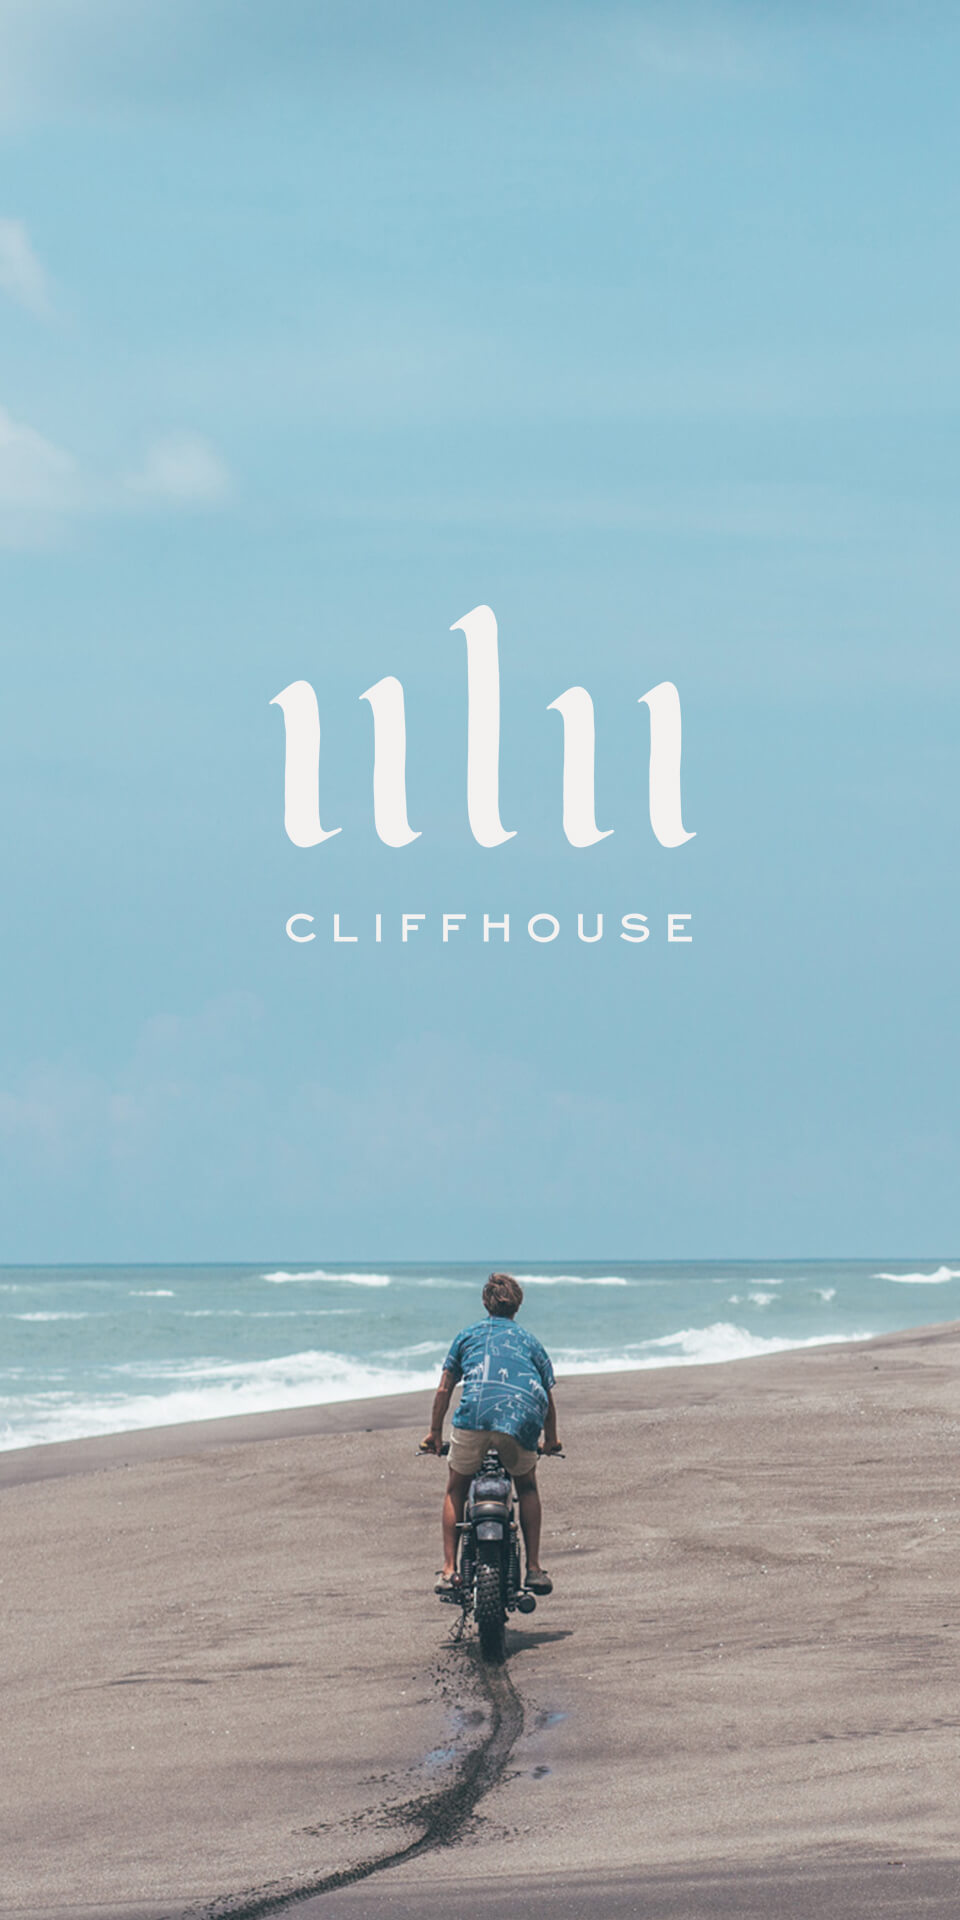 ULU CLIFFHOUSE